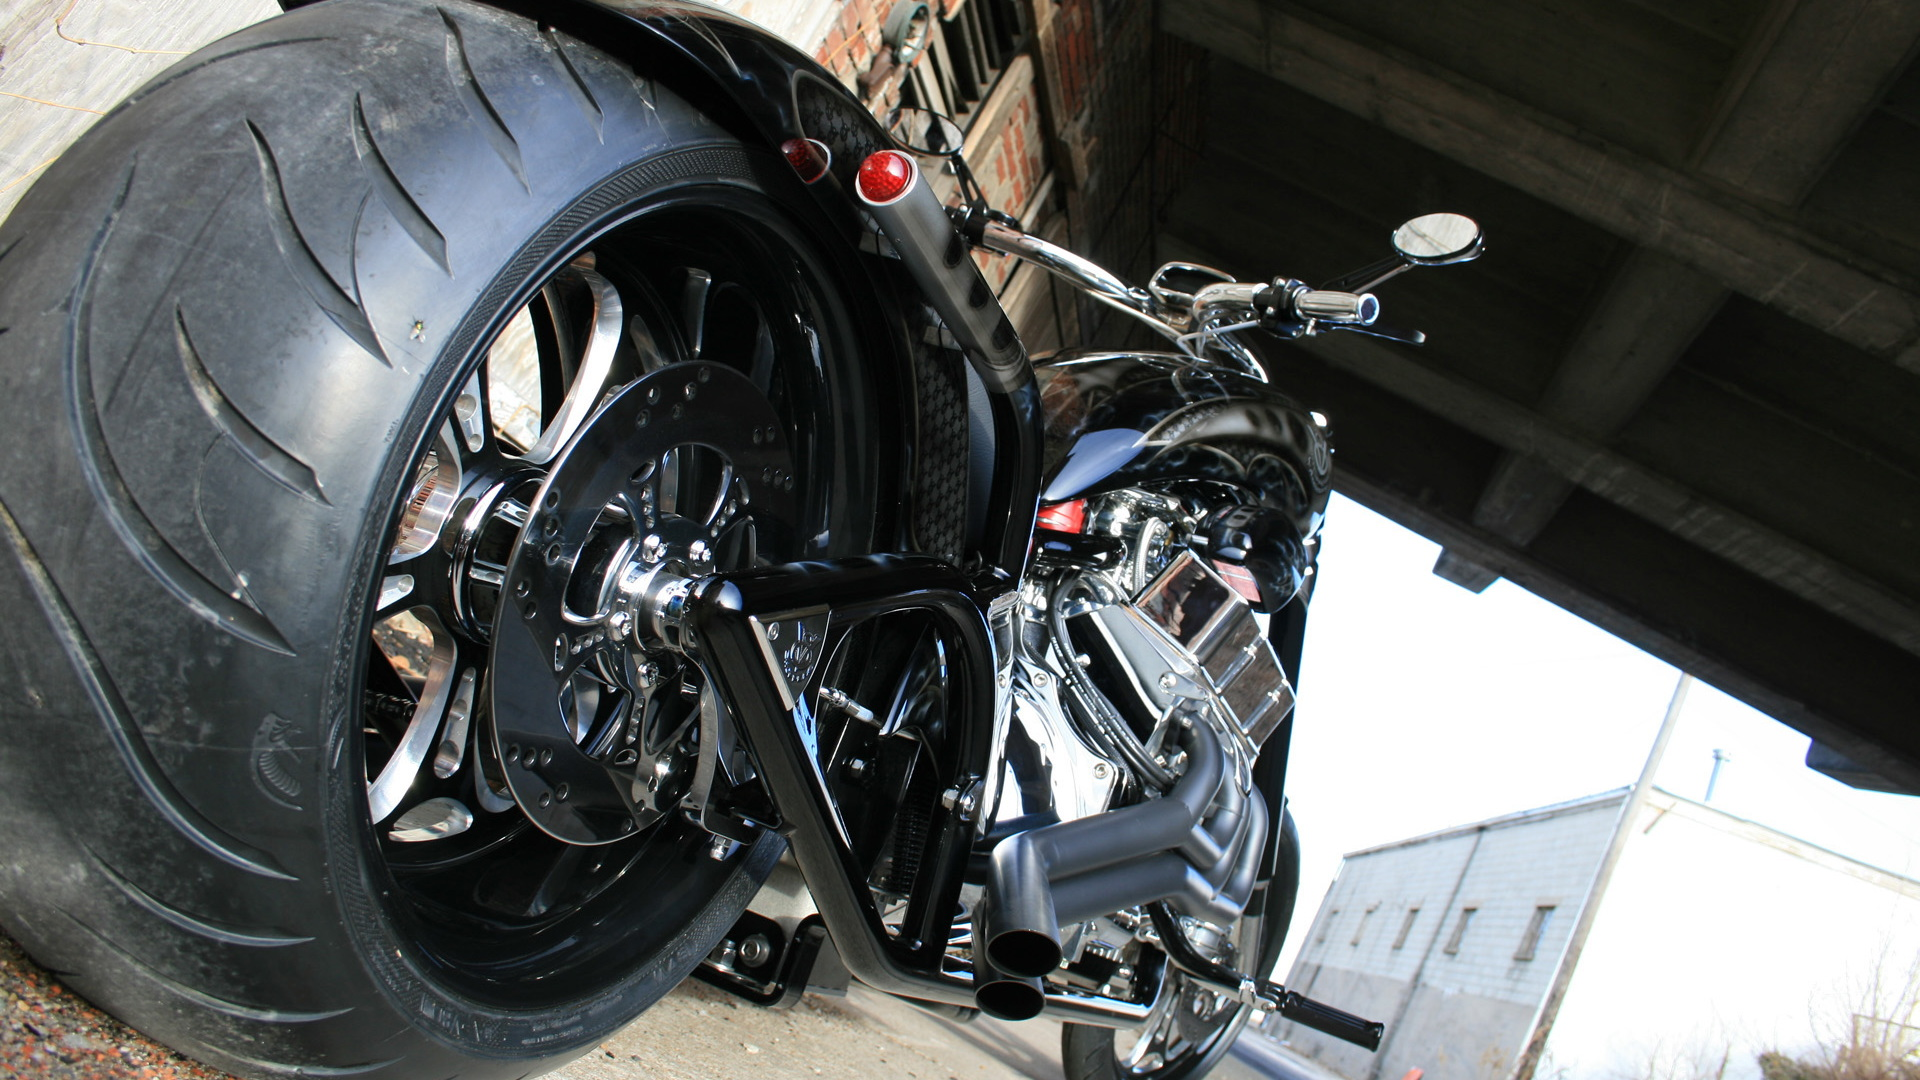 V-8 Choppers Chevy V-8-powered motorcycle -- image via Serious Wheels